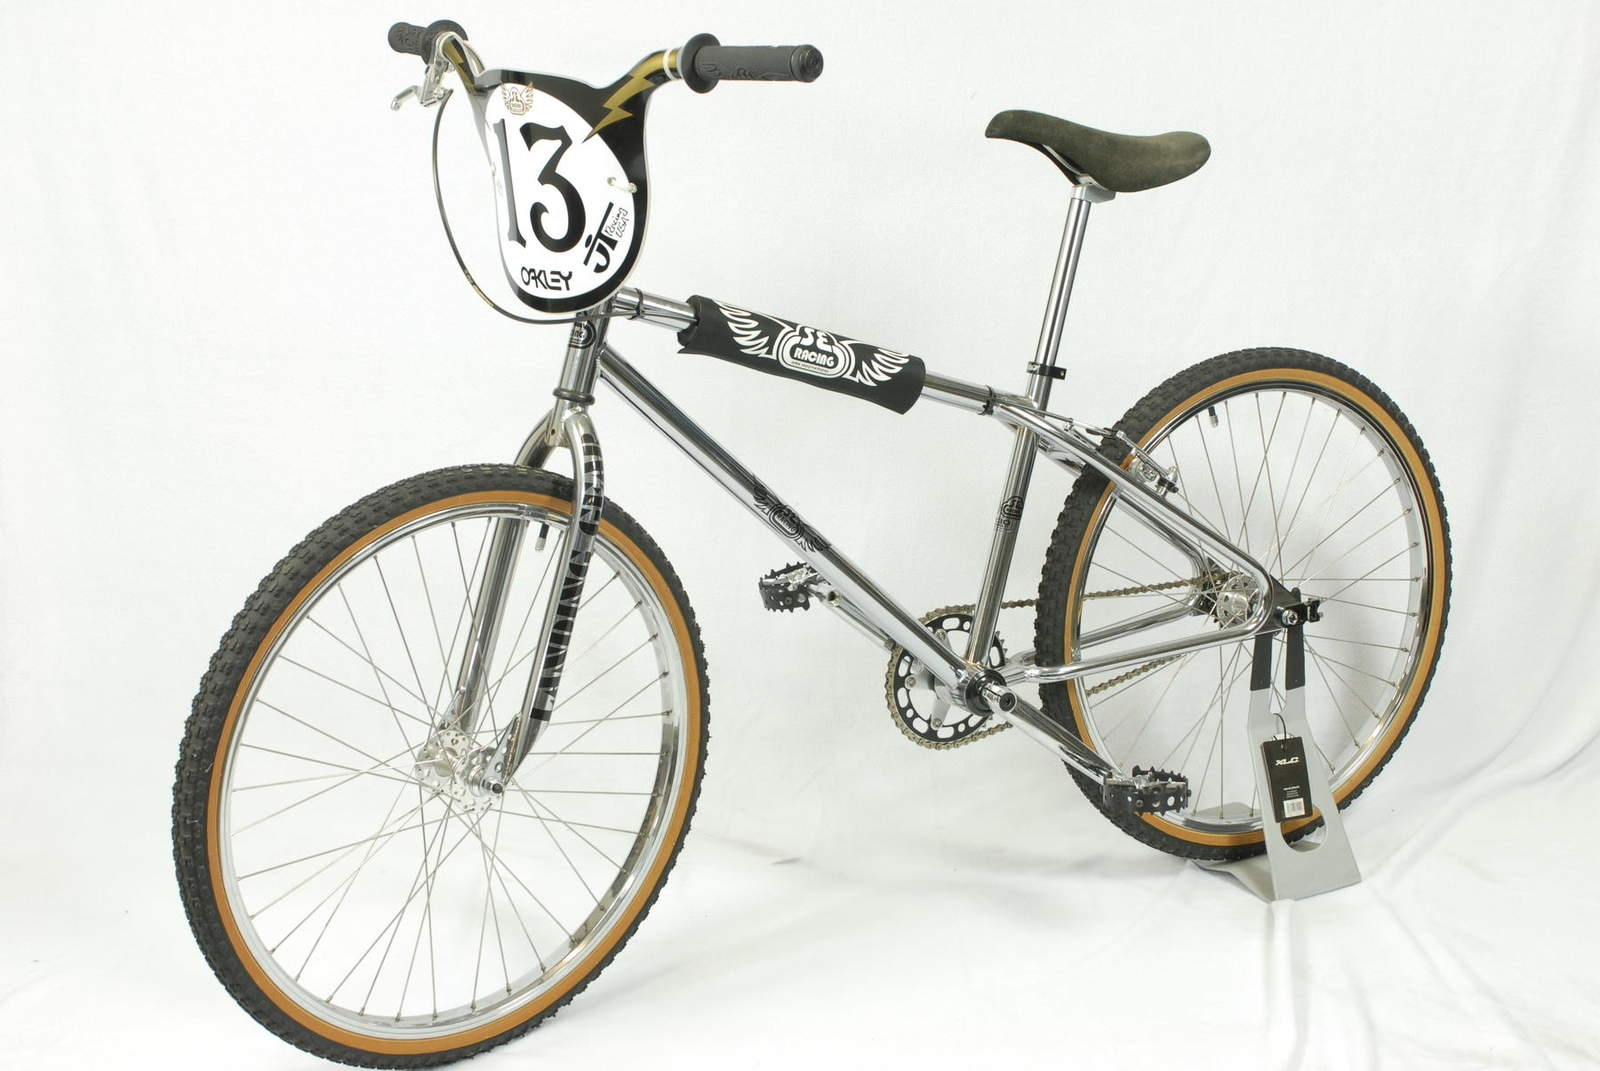 http://uploads.bmxmuseum.com/user-images/88664/dsc_02435a63e60f89_blowup5c6f81603b.jpg